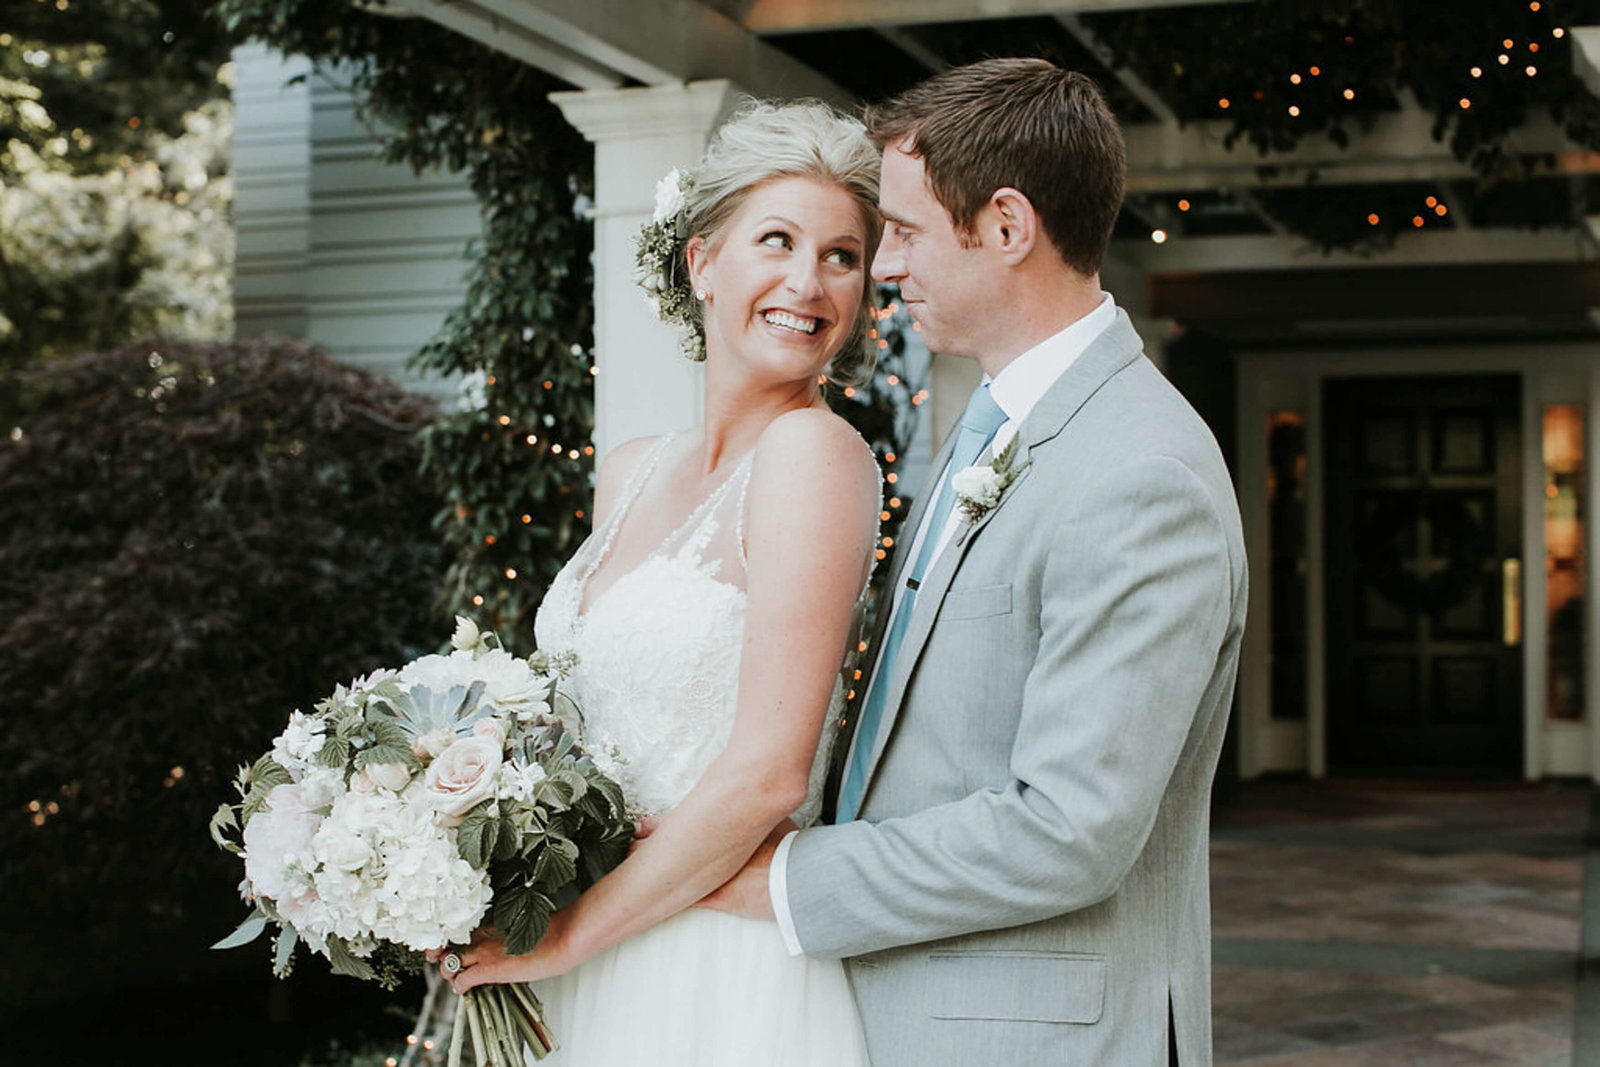 Woodway_Seattle_Wedding_Mark+Patricia_by_Adina_Preston_Weddings_2796